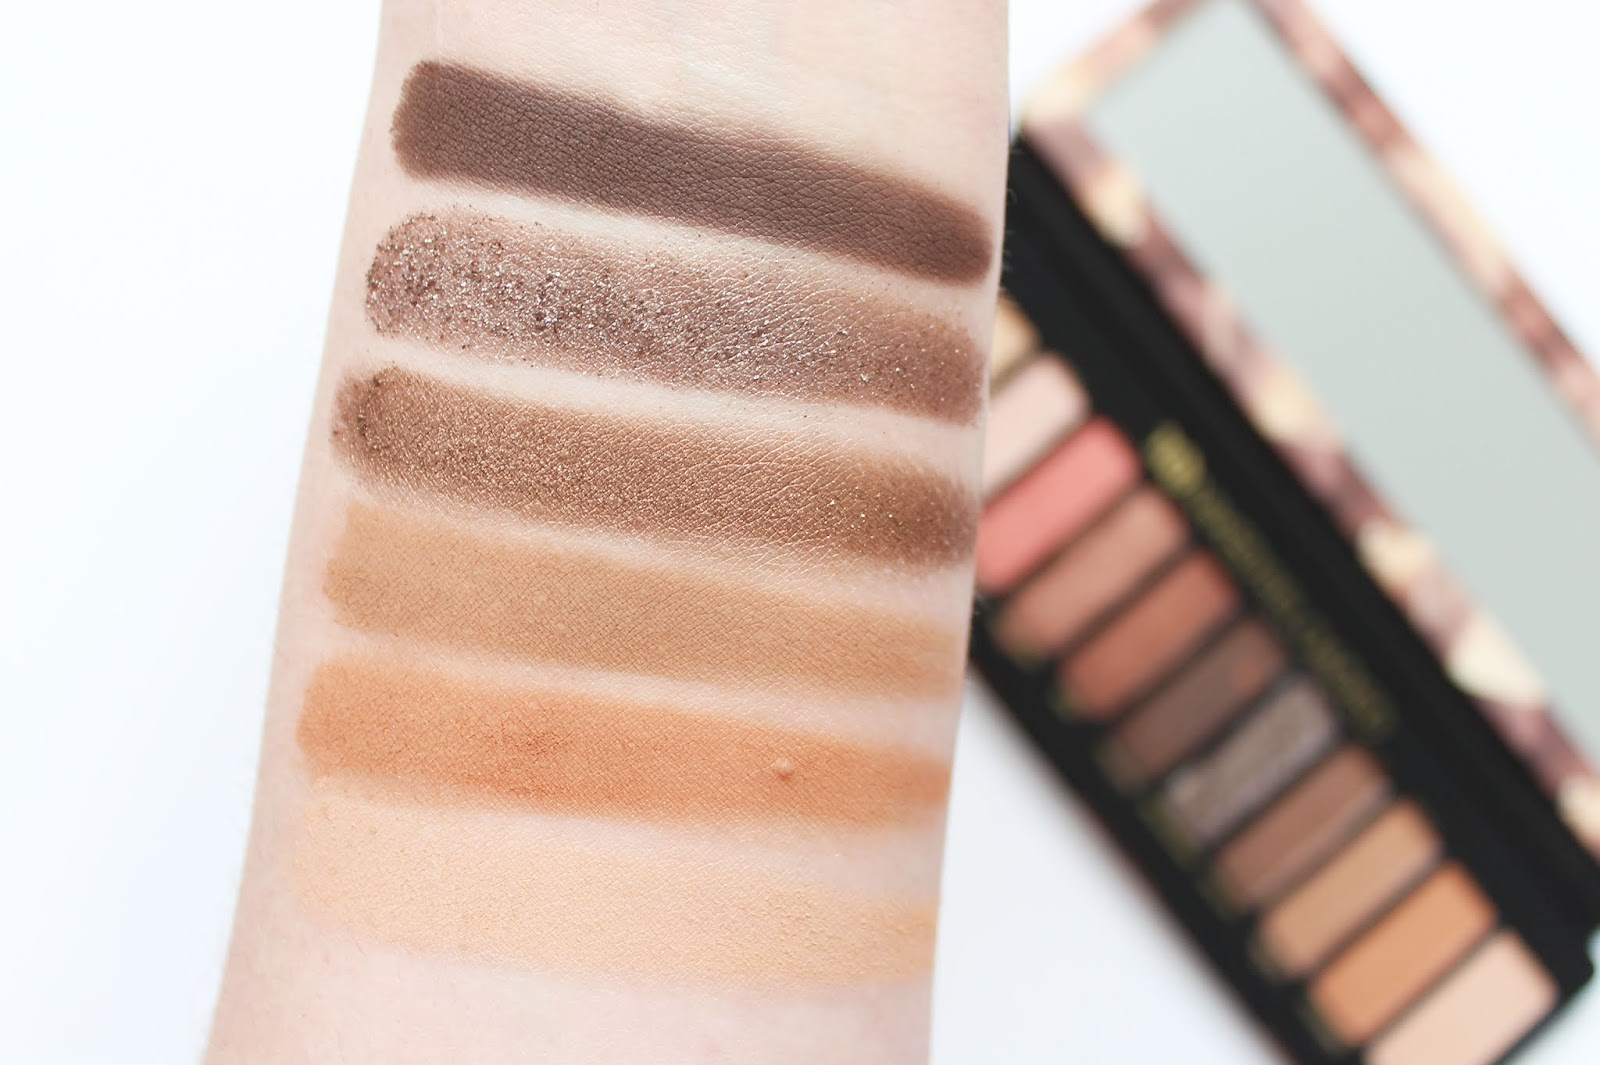 URBAN DECAY | Naked Reloaded Eyeshadow Palette - Review + Swatches - CassandraMyee